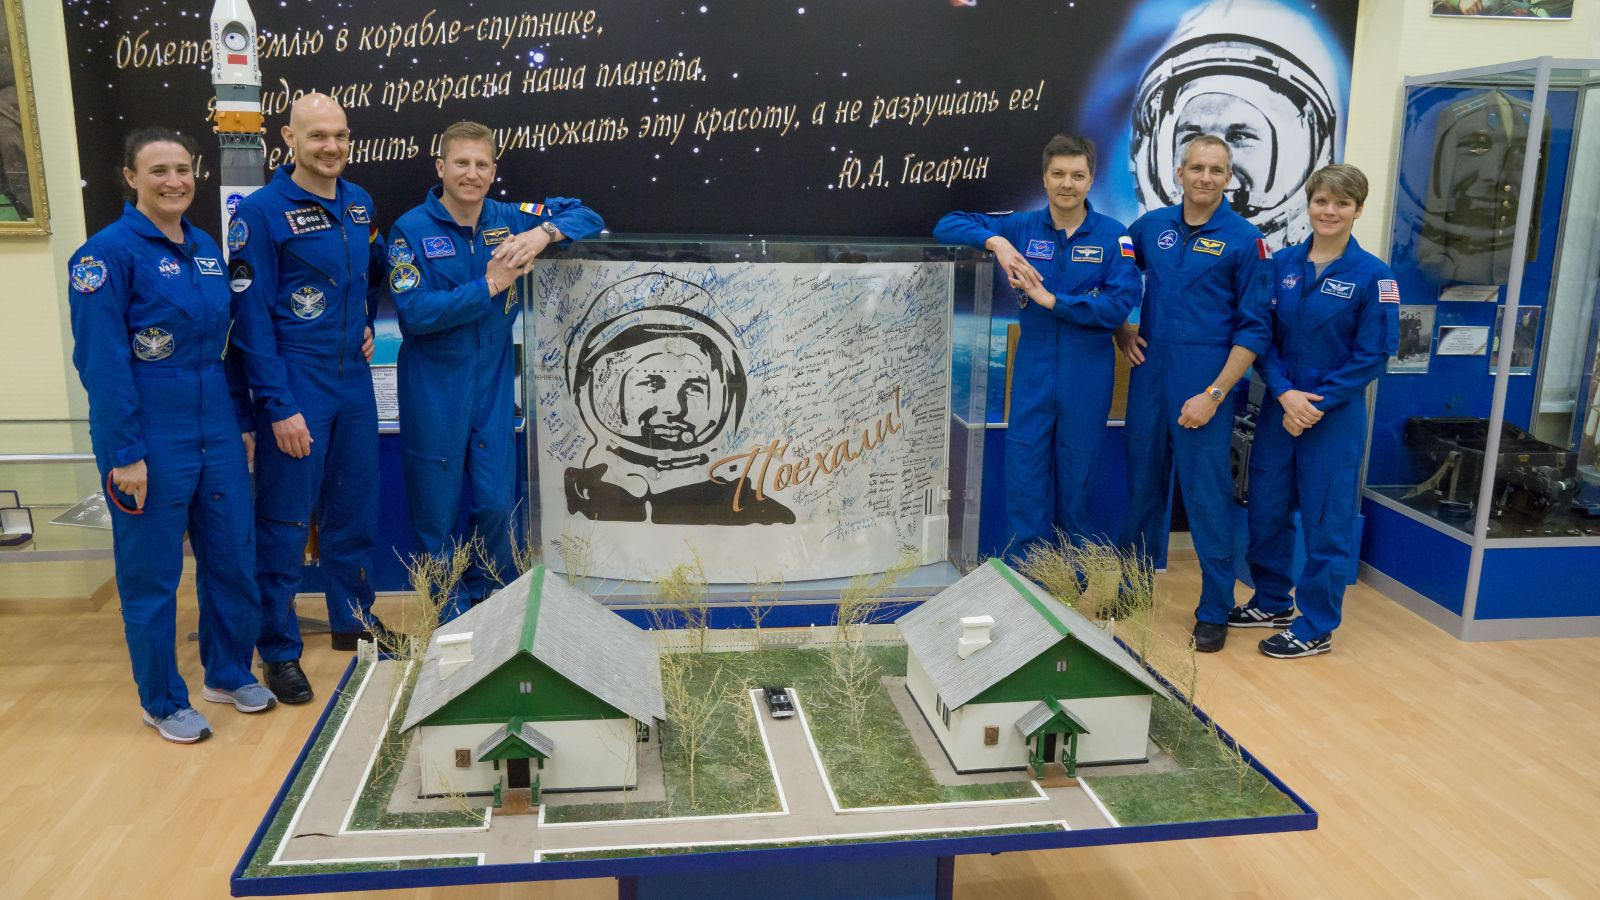 International Space Station Expedition 56 prime and backup crew stand next to a portrait of Yuri Gagarin, who was the first human to fly in space. On the left is the prime crew consisting of Serena Aunon-Chancelor of NASA, Alexander Gerst of ESA and Sergey Prokopyev of Roscosmos. On the right is the backup crew consisting of Oleg Kononenko of Roscosmos, David Saint-Jacques of the Canadian Space Agency and Anne McClain of NASA. Photo Credit: Victor Zelentsov / NASA